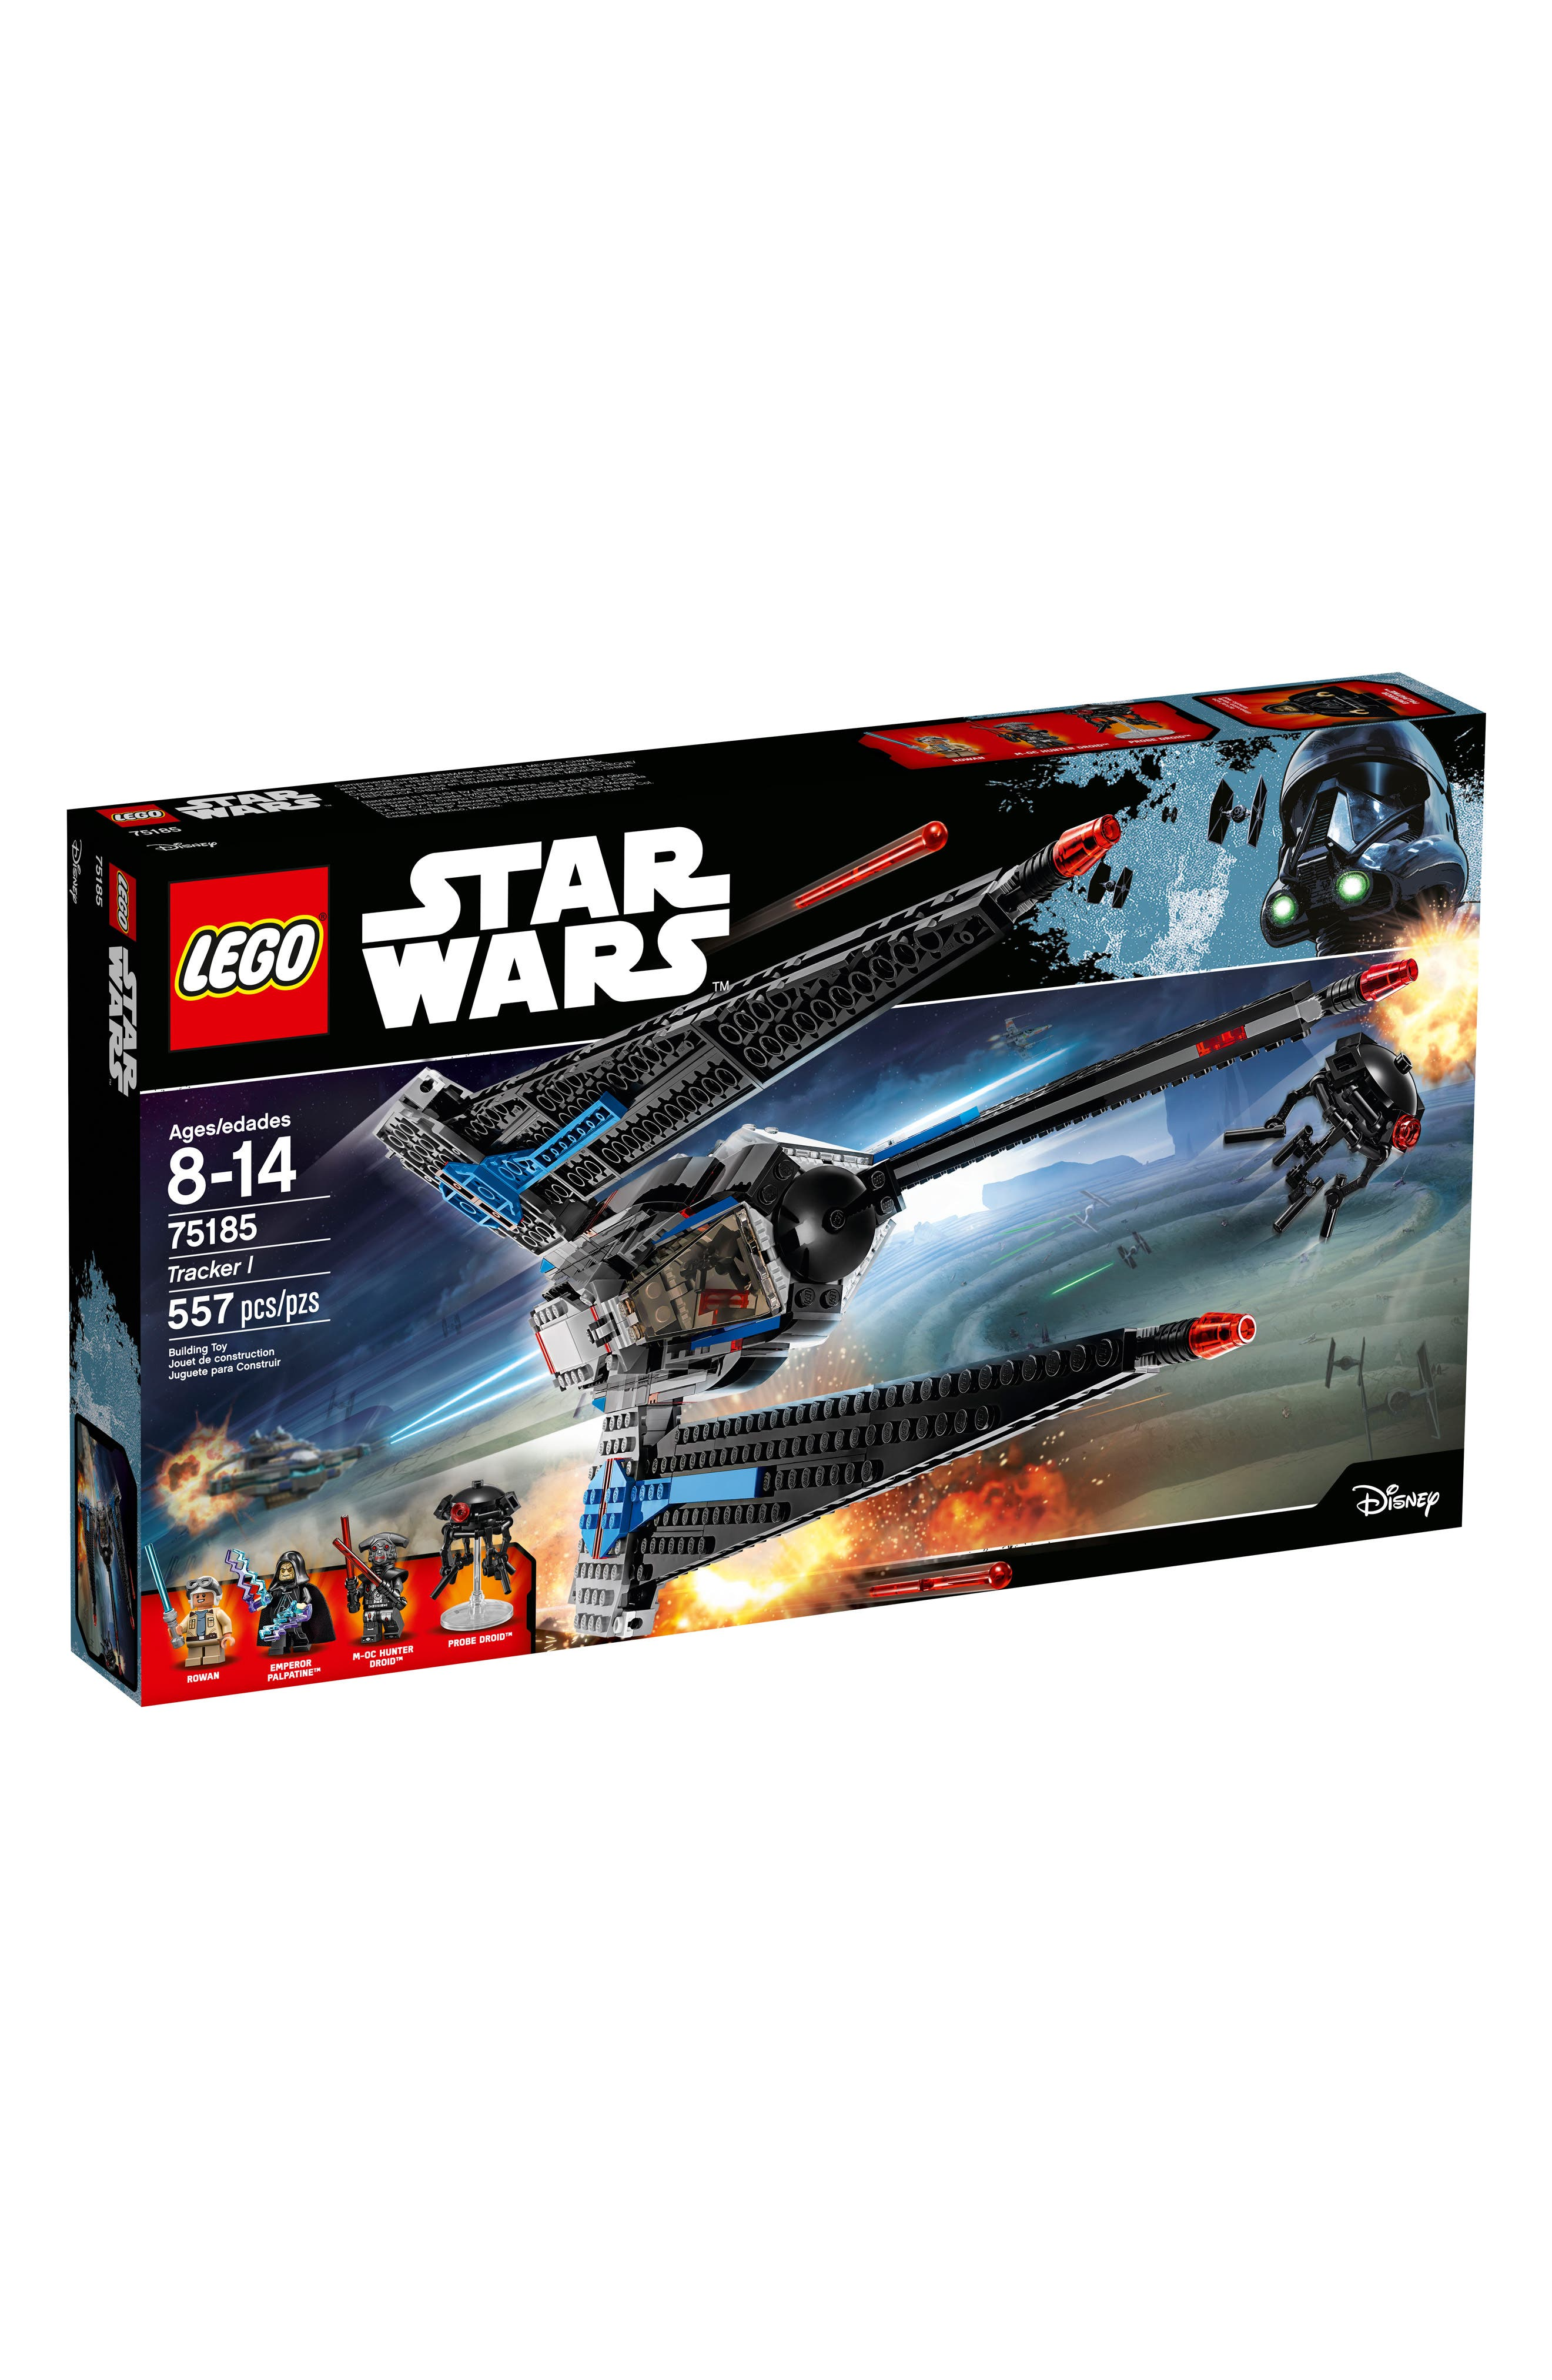 LEGO® Star Wars™: The Freemaker Adventures Tracker I Play Set - 75185